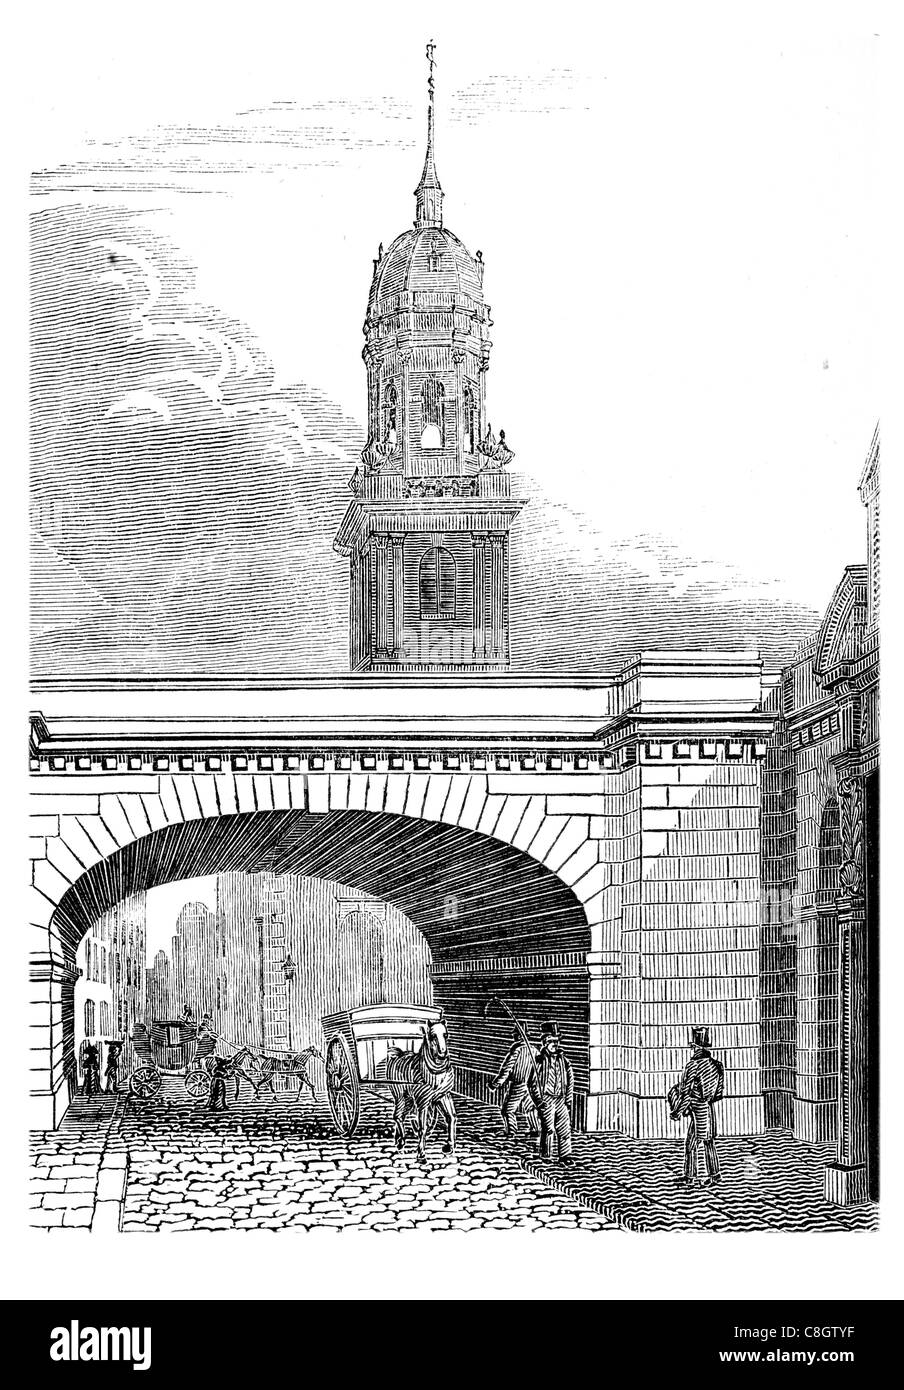 New London Bridge Arch over Thames street tower spire cobbles cobbles horse drawn carriage - Stock Image